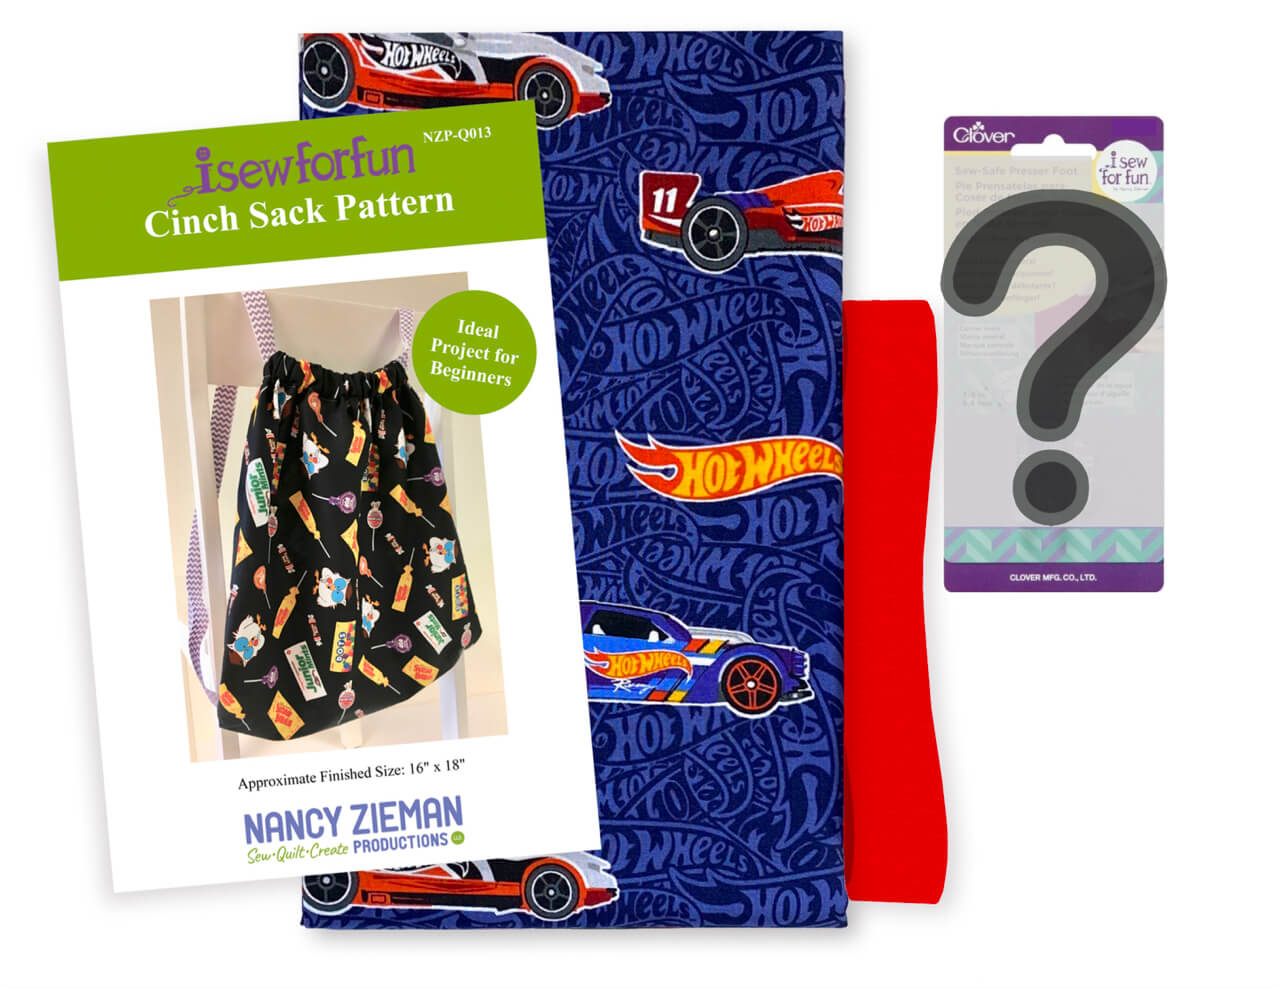 I Sew For Fun Chinch Sack Bundle Box Available at Nancy Zieman Productions at ShopNZP.com